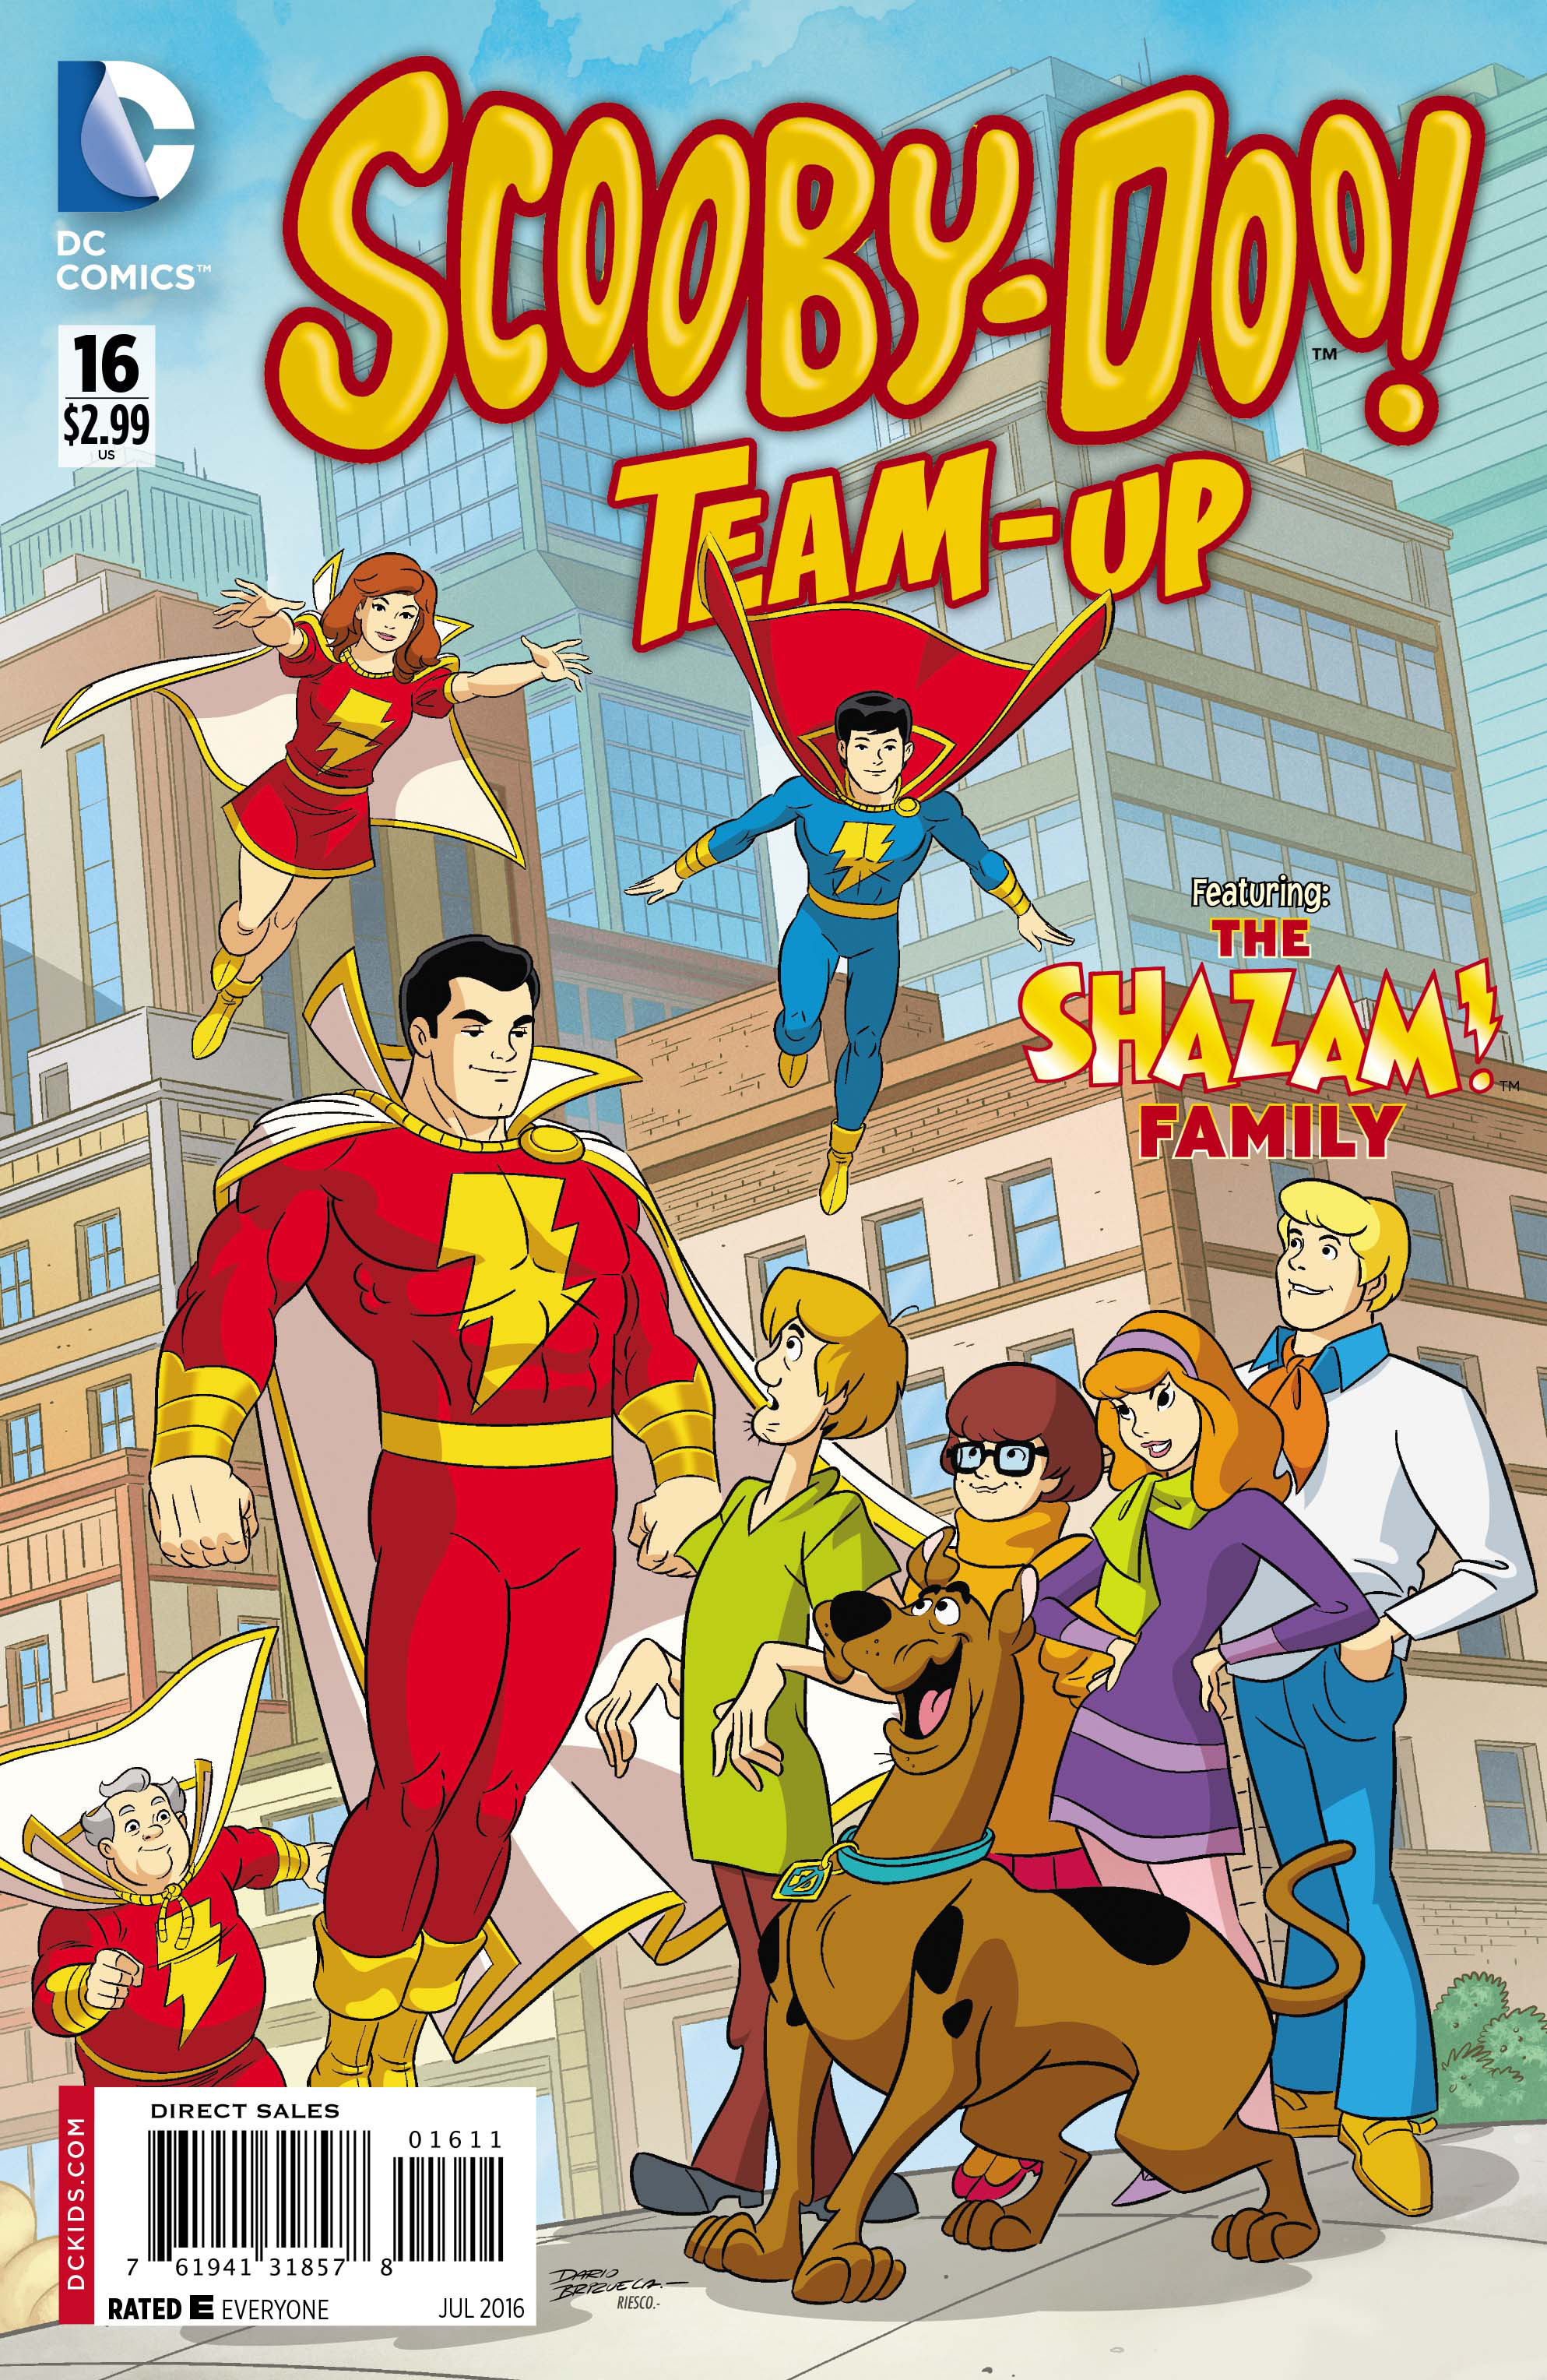 SCOOBY DOO TEAM UP #16